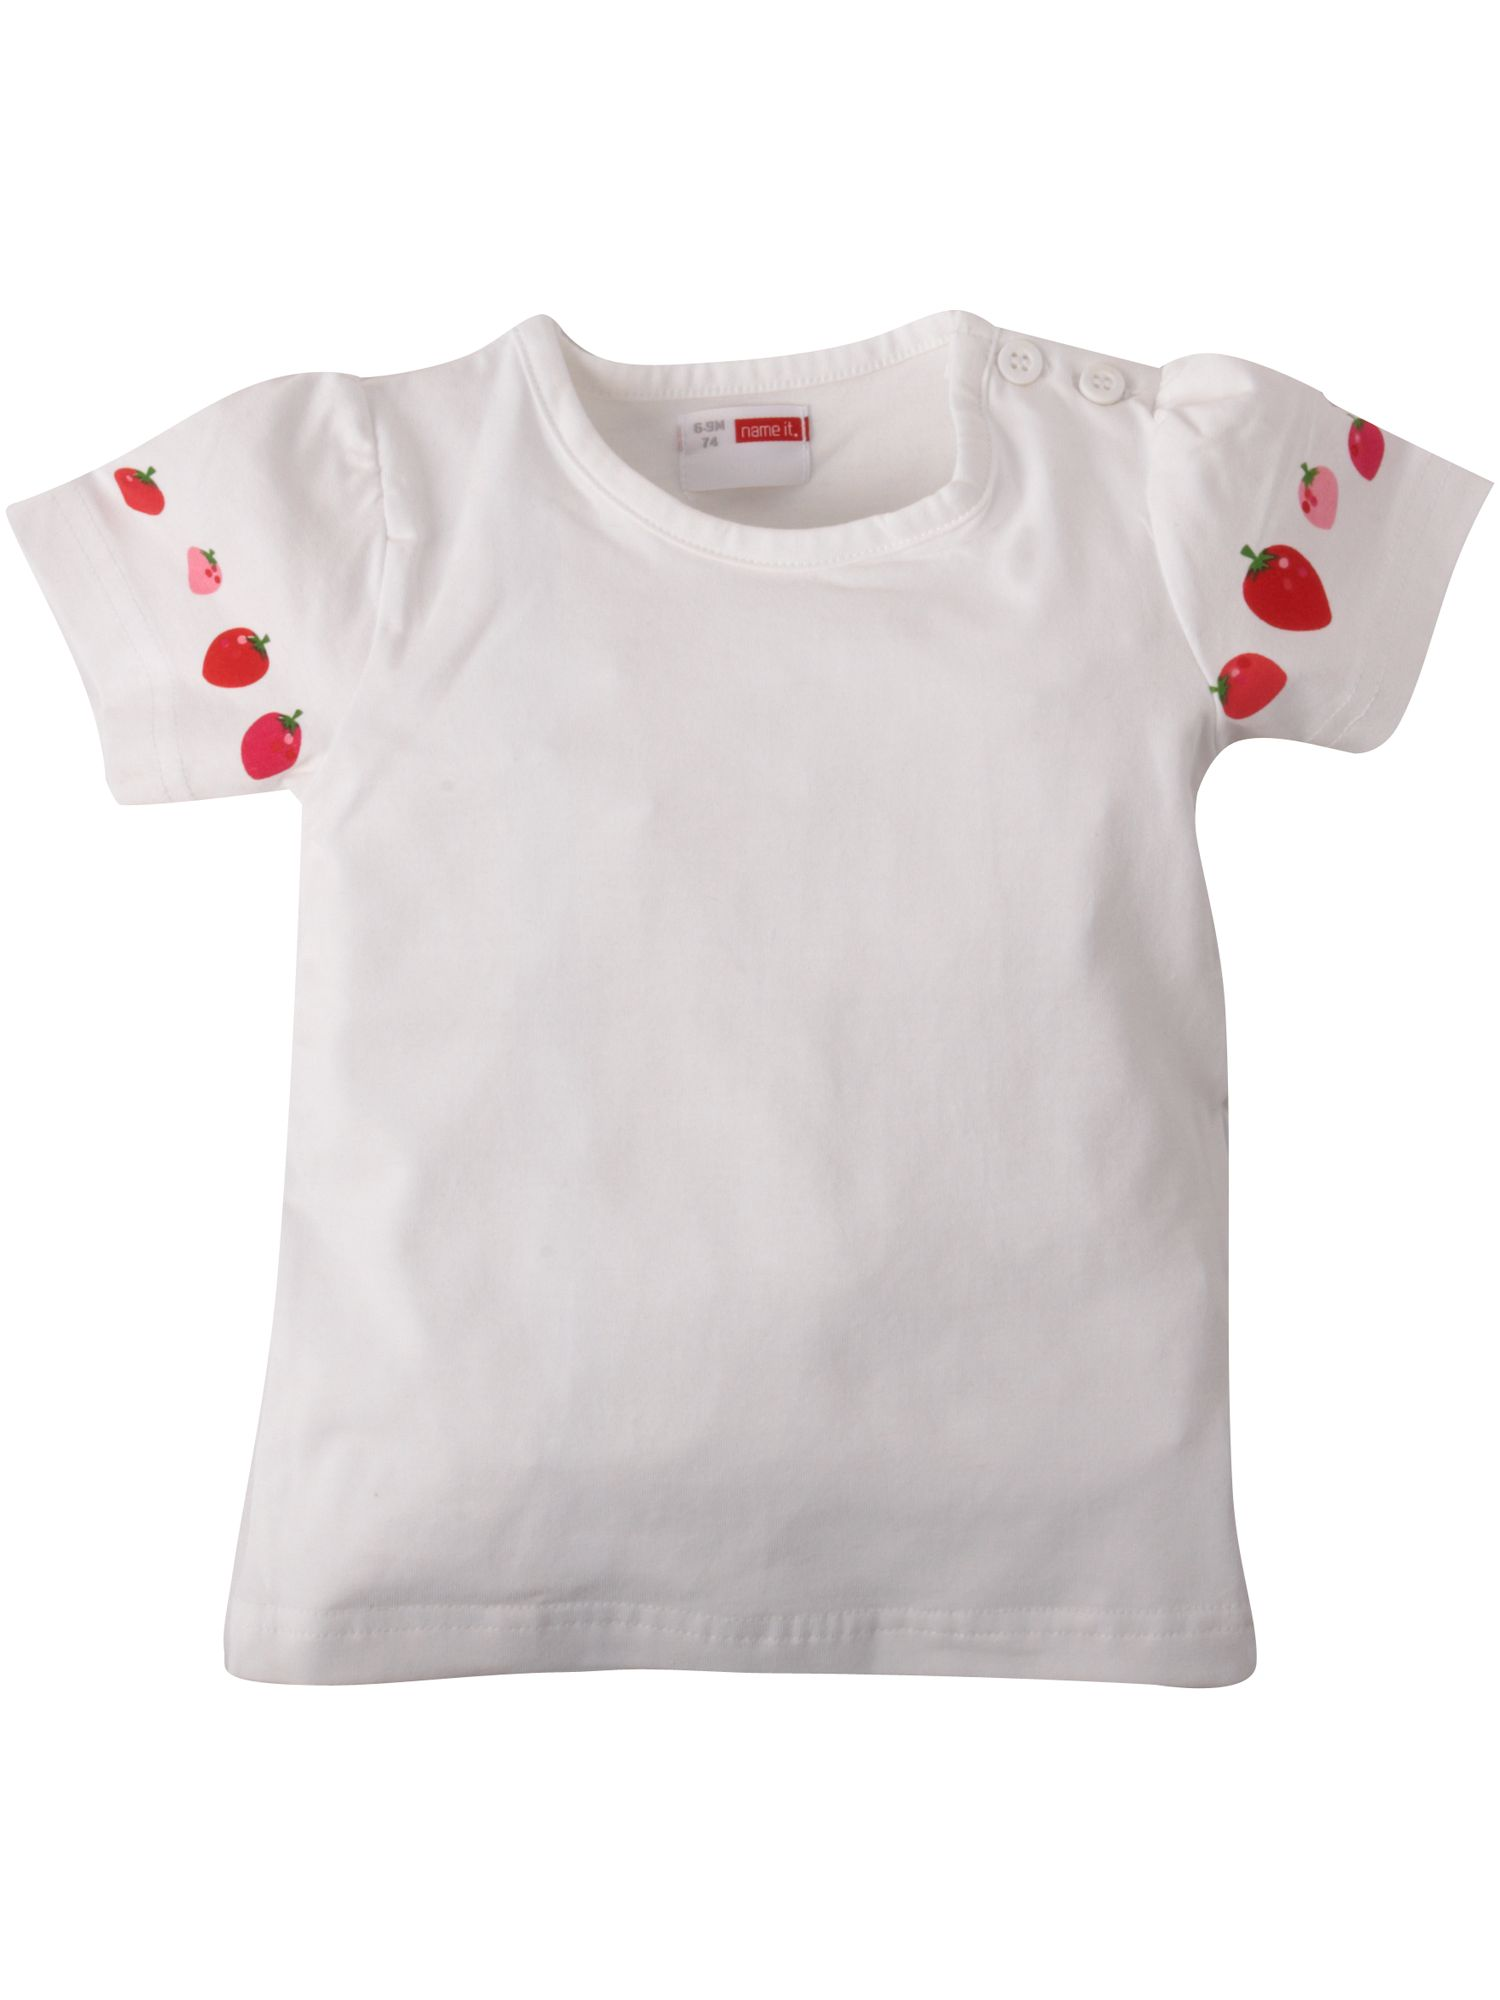 Name It Short-sleeved strawberry detail T-shirt product image